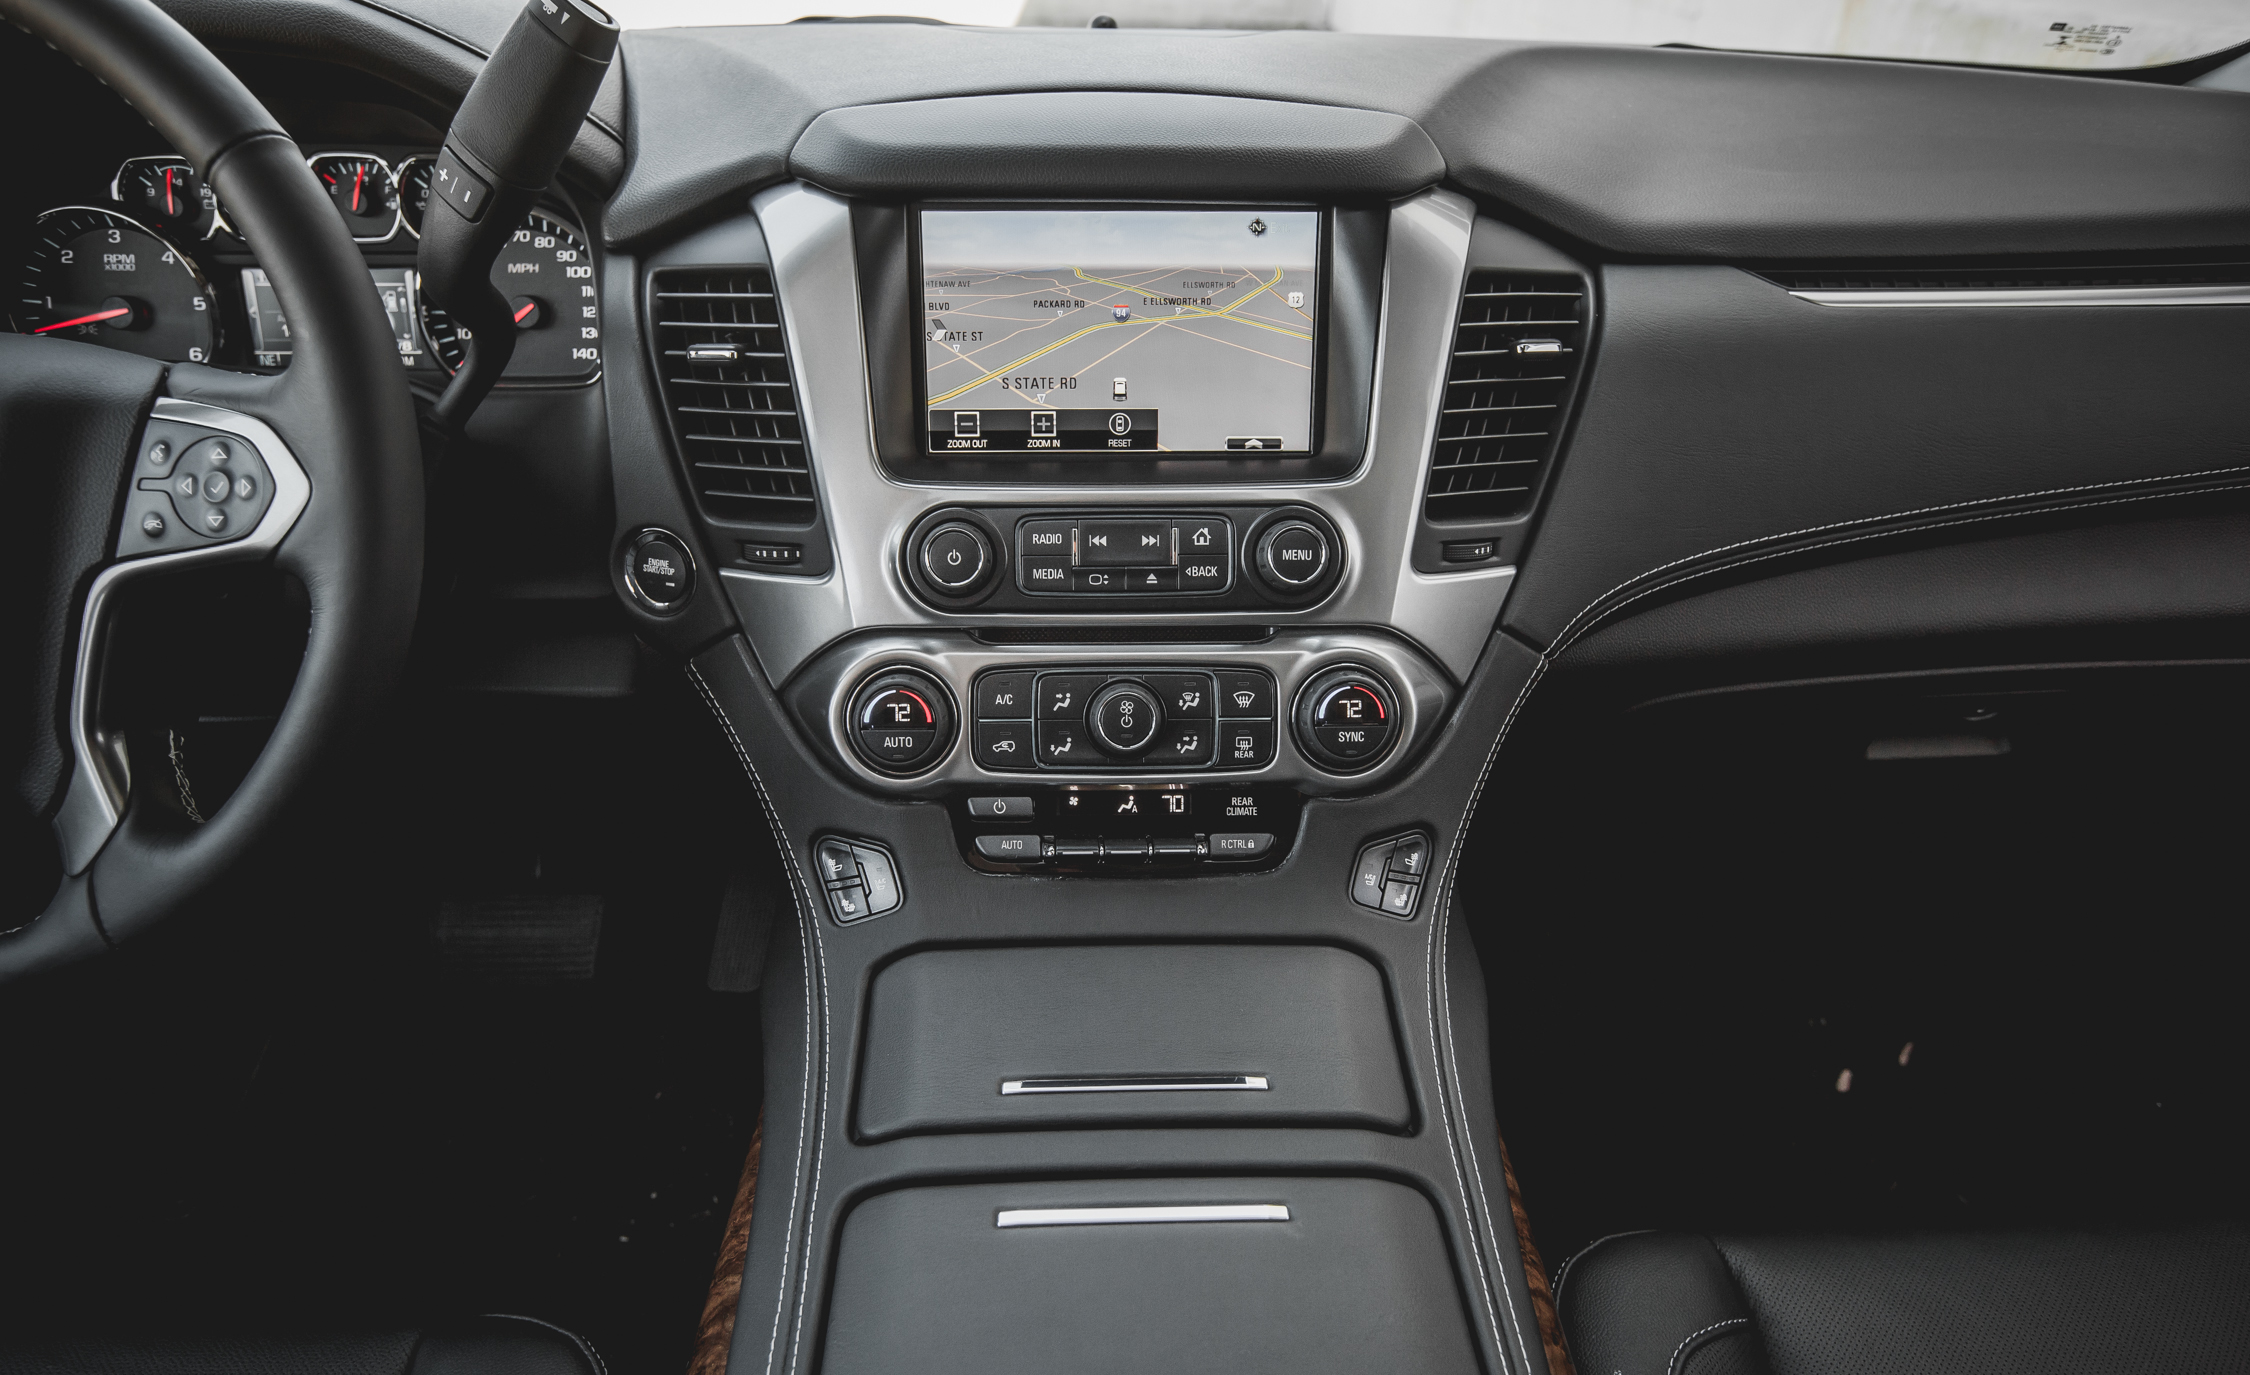 2015 Chevrolet Suburban LTZ Interior Head Unit